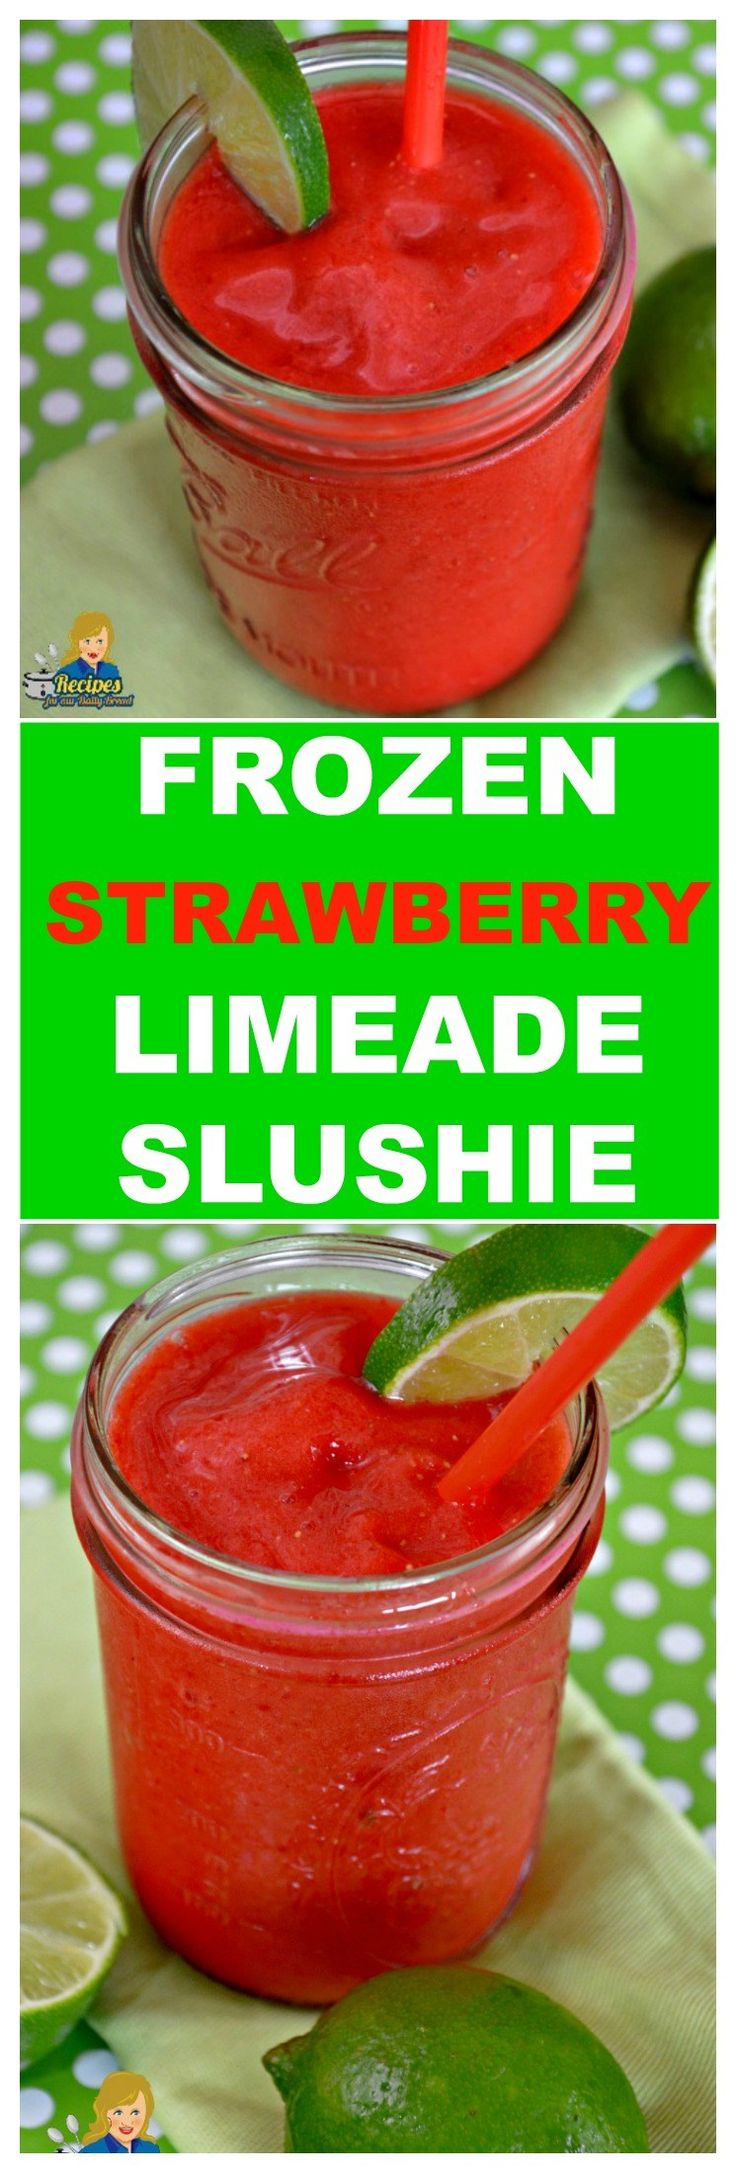 FROZEN STRAWBERRY LIMEADE SLUSHIE SWEET TANGY TERRIFIC This frozen strawberry limeade is the perfect summer treat.  It is so easy to make with frozen or fresh strawberries.    Celebrate 4th of July with this yummy frozen strawberry limeade.  It is cold, tangy, sweet and terrific not to mention how easy it is to make.   SEE FULL RECIPE HERE:  http://recipesforourdailybread.com/frozen-strawberry-limeade-slushie/